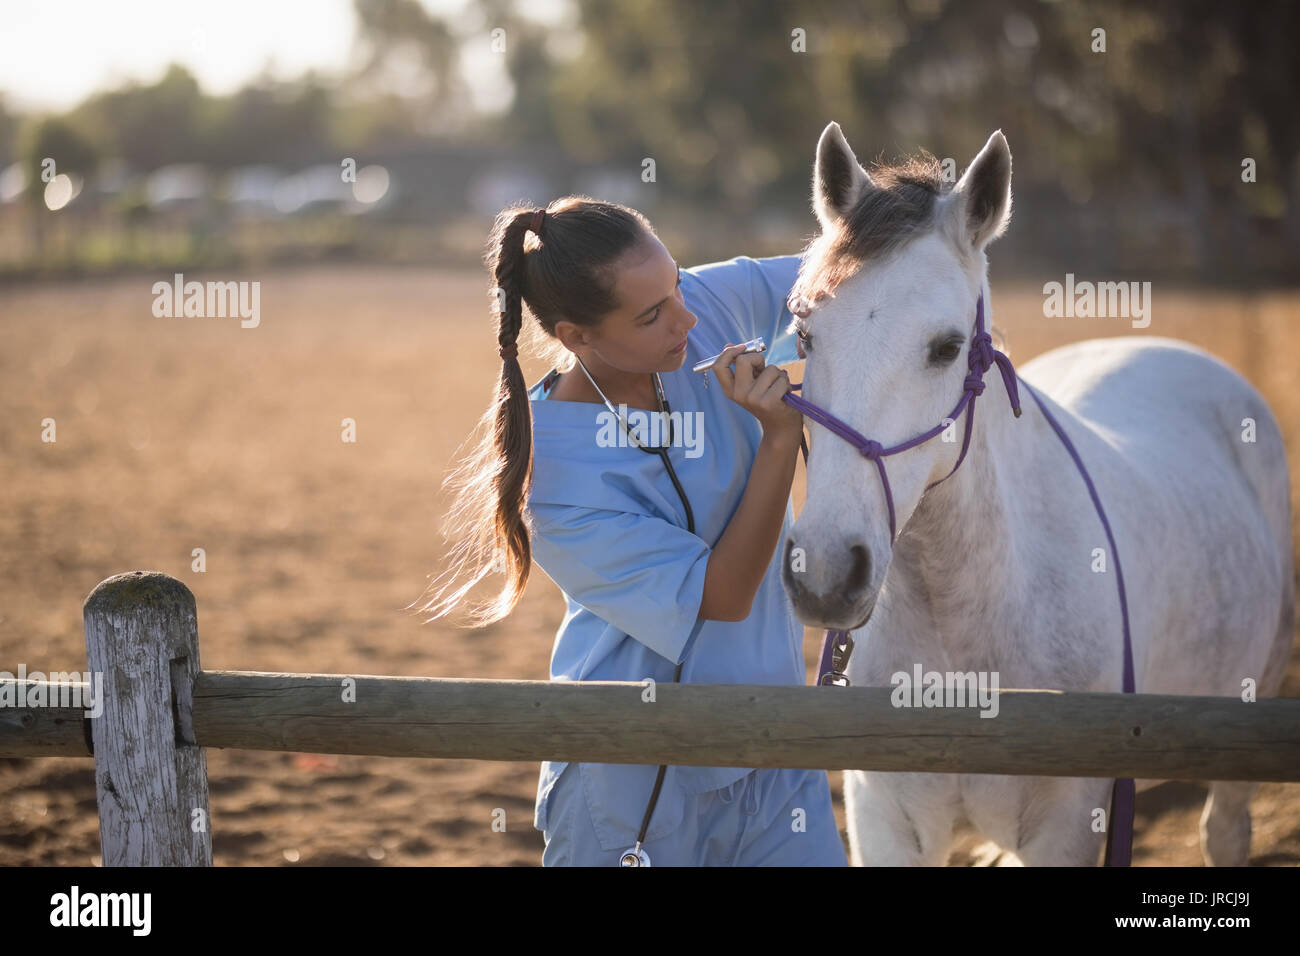 Female vet examining horse eye at barn - Stock Image